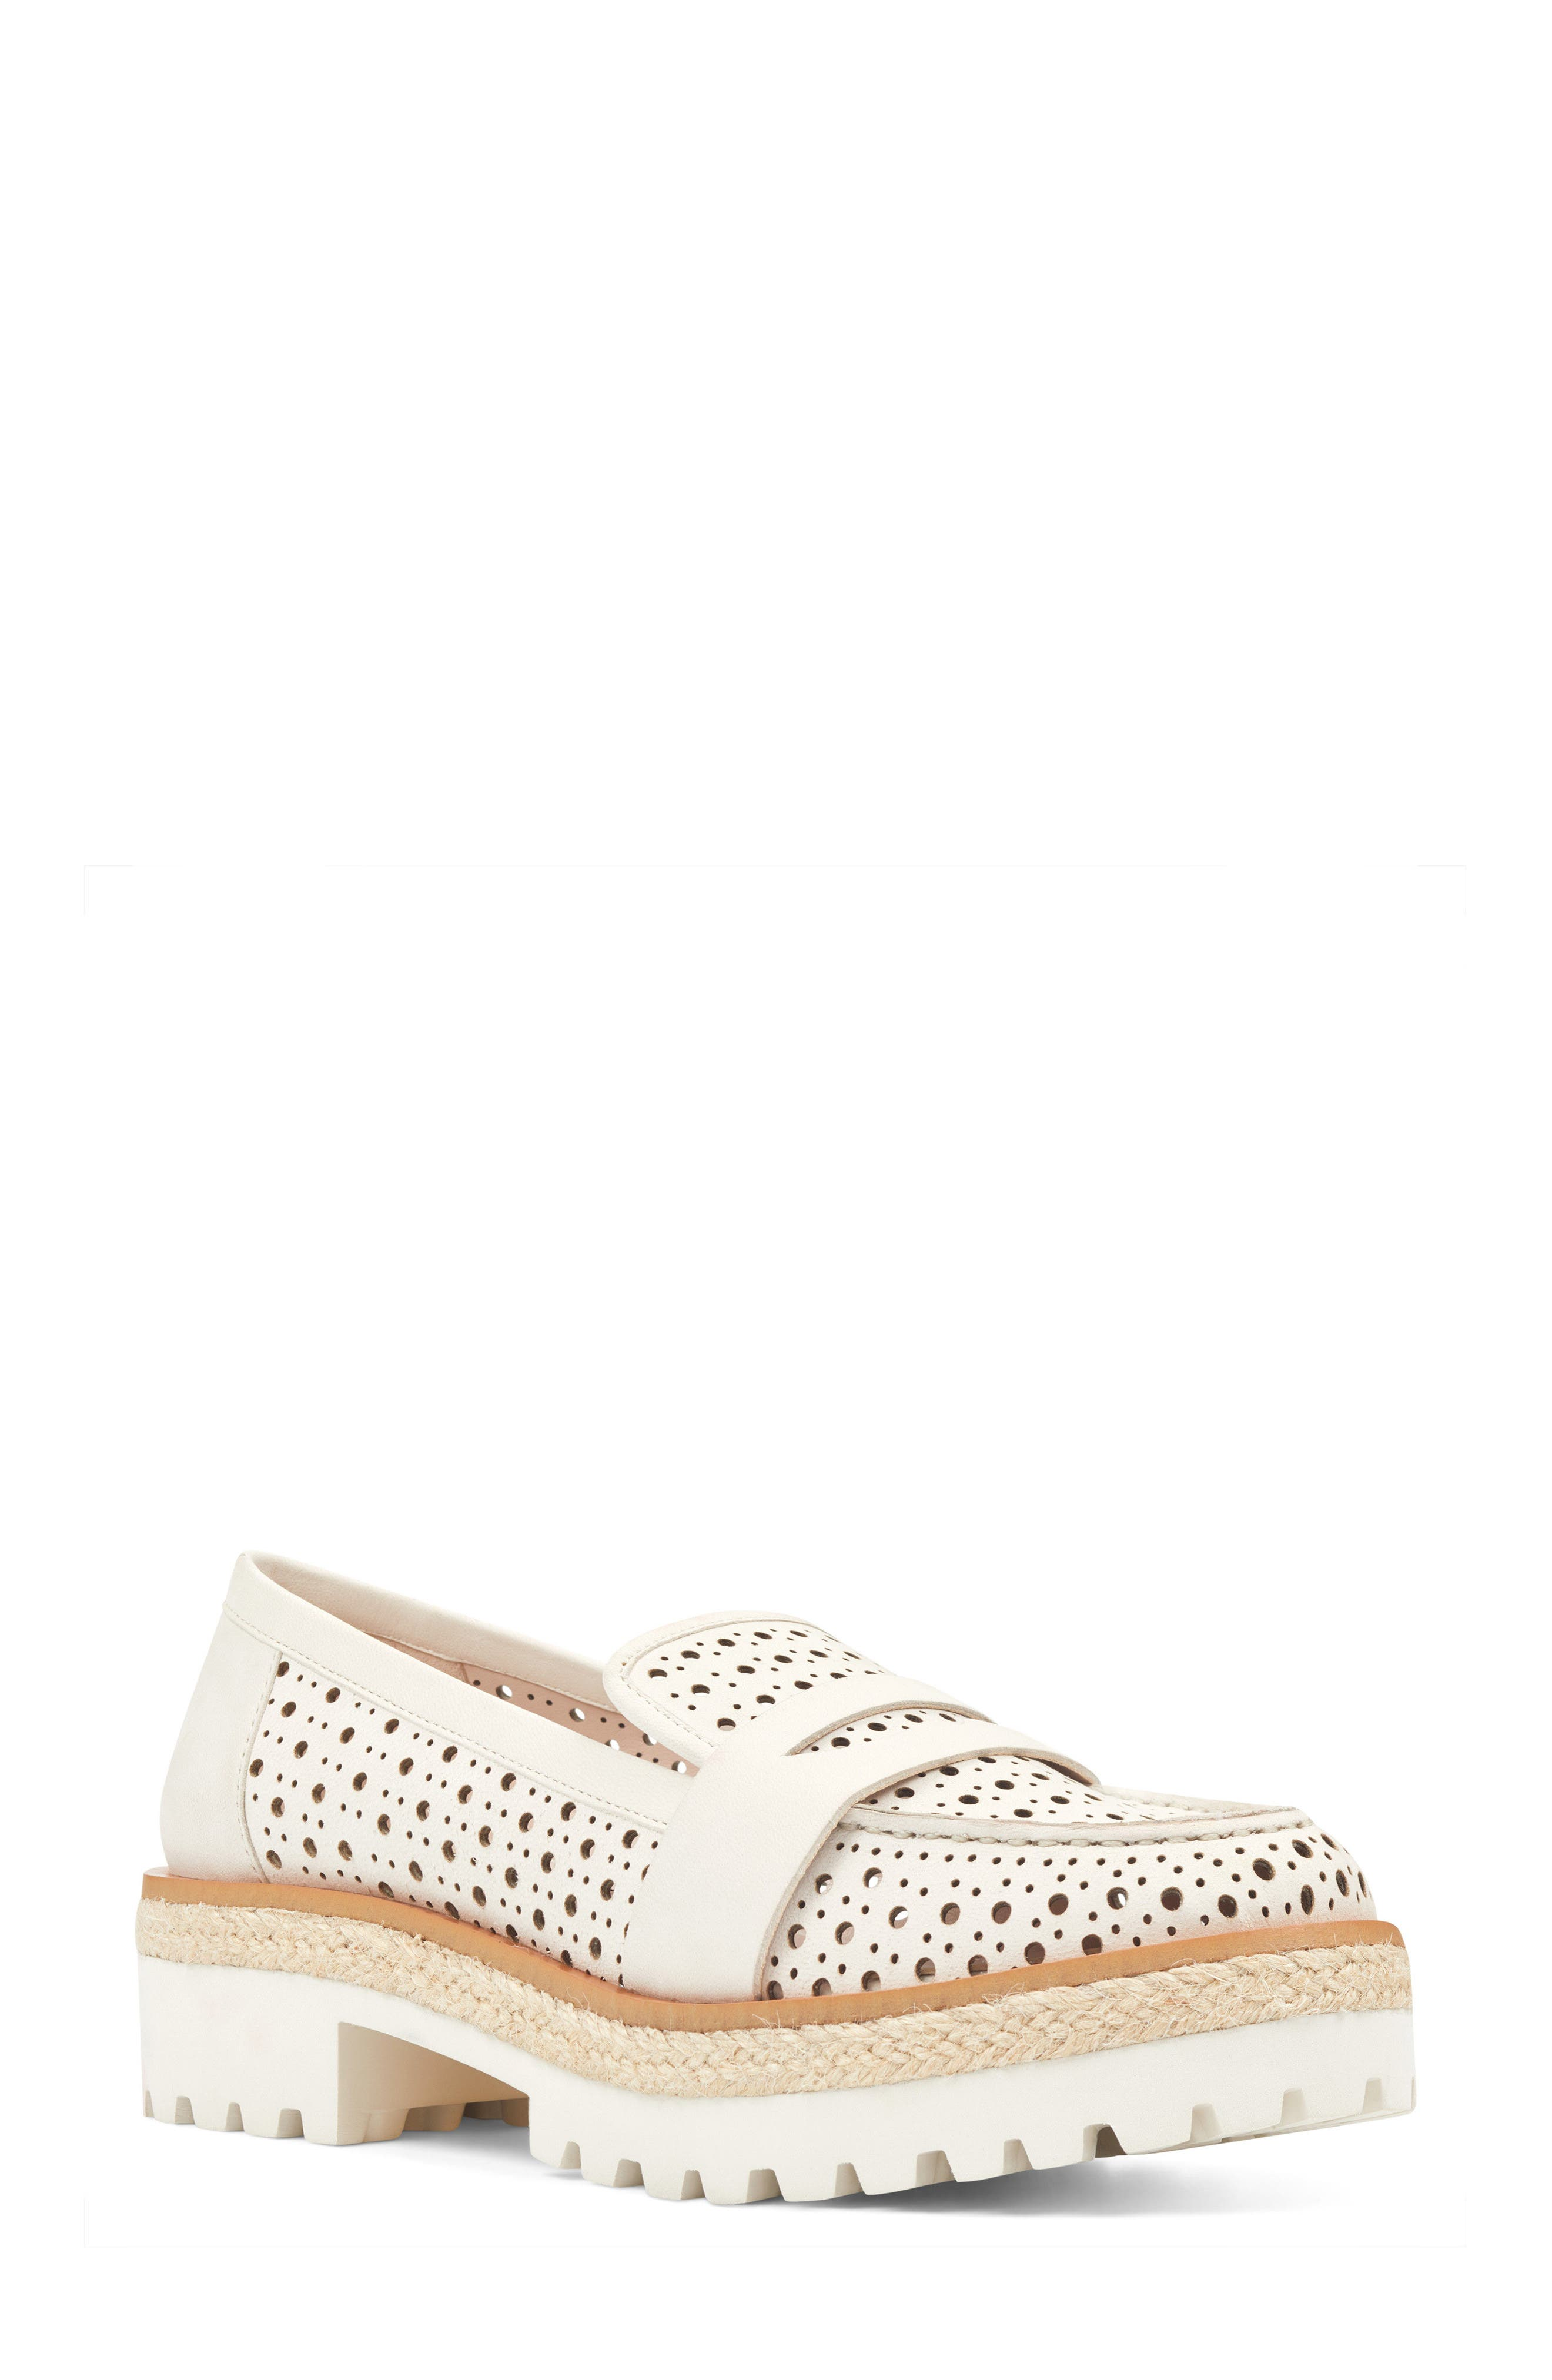 Gradskool Perforated Penny Loafer,                             Main thumbnail 1, color,                             Off White Leather